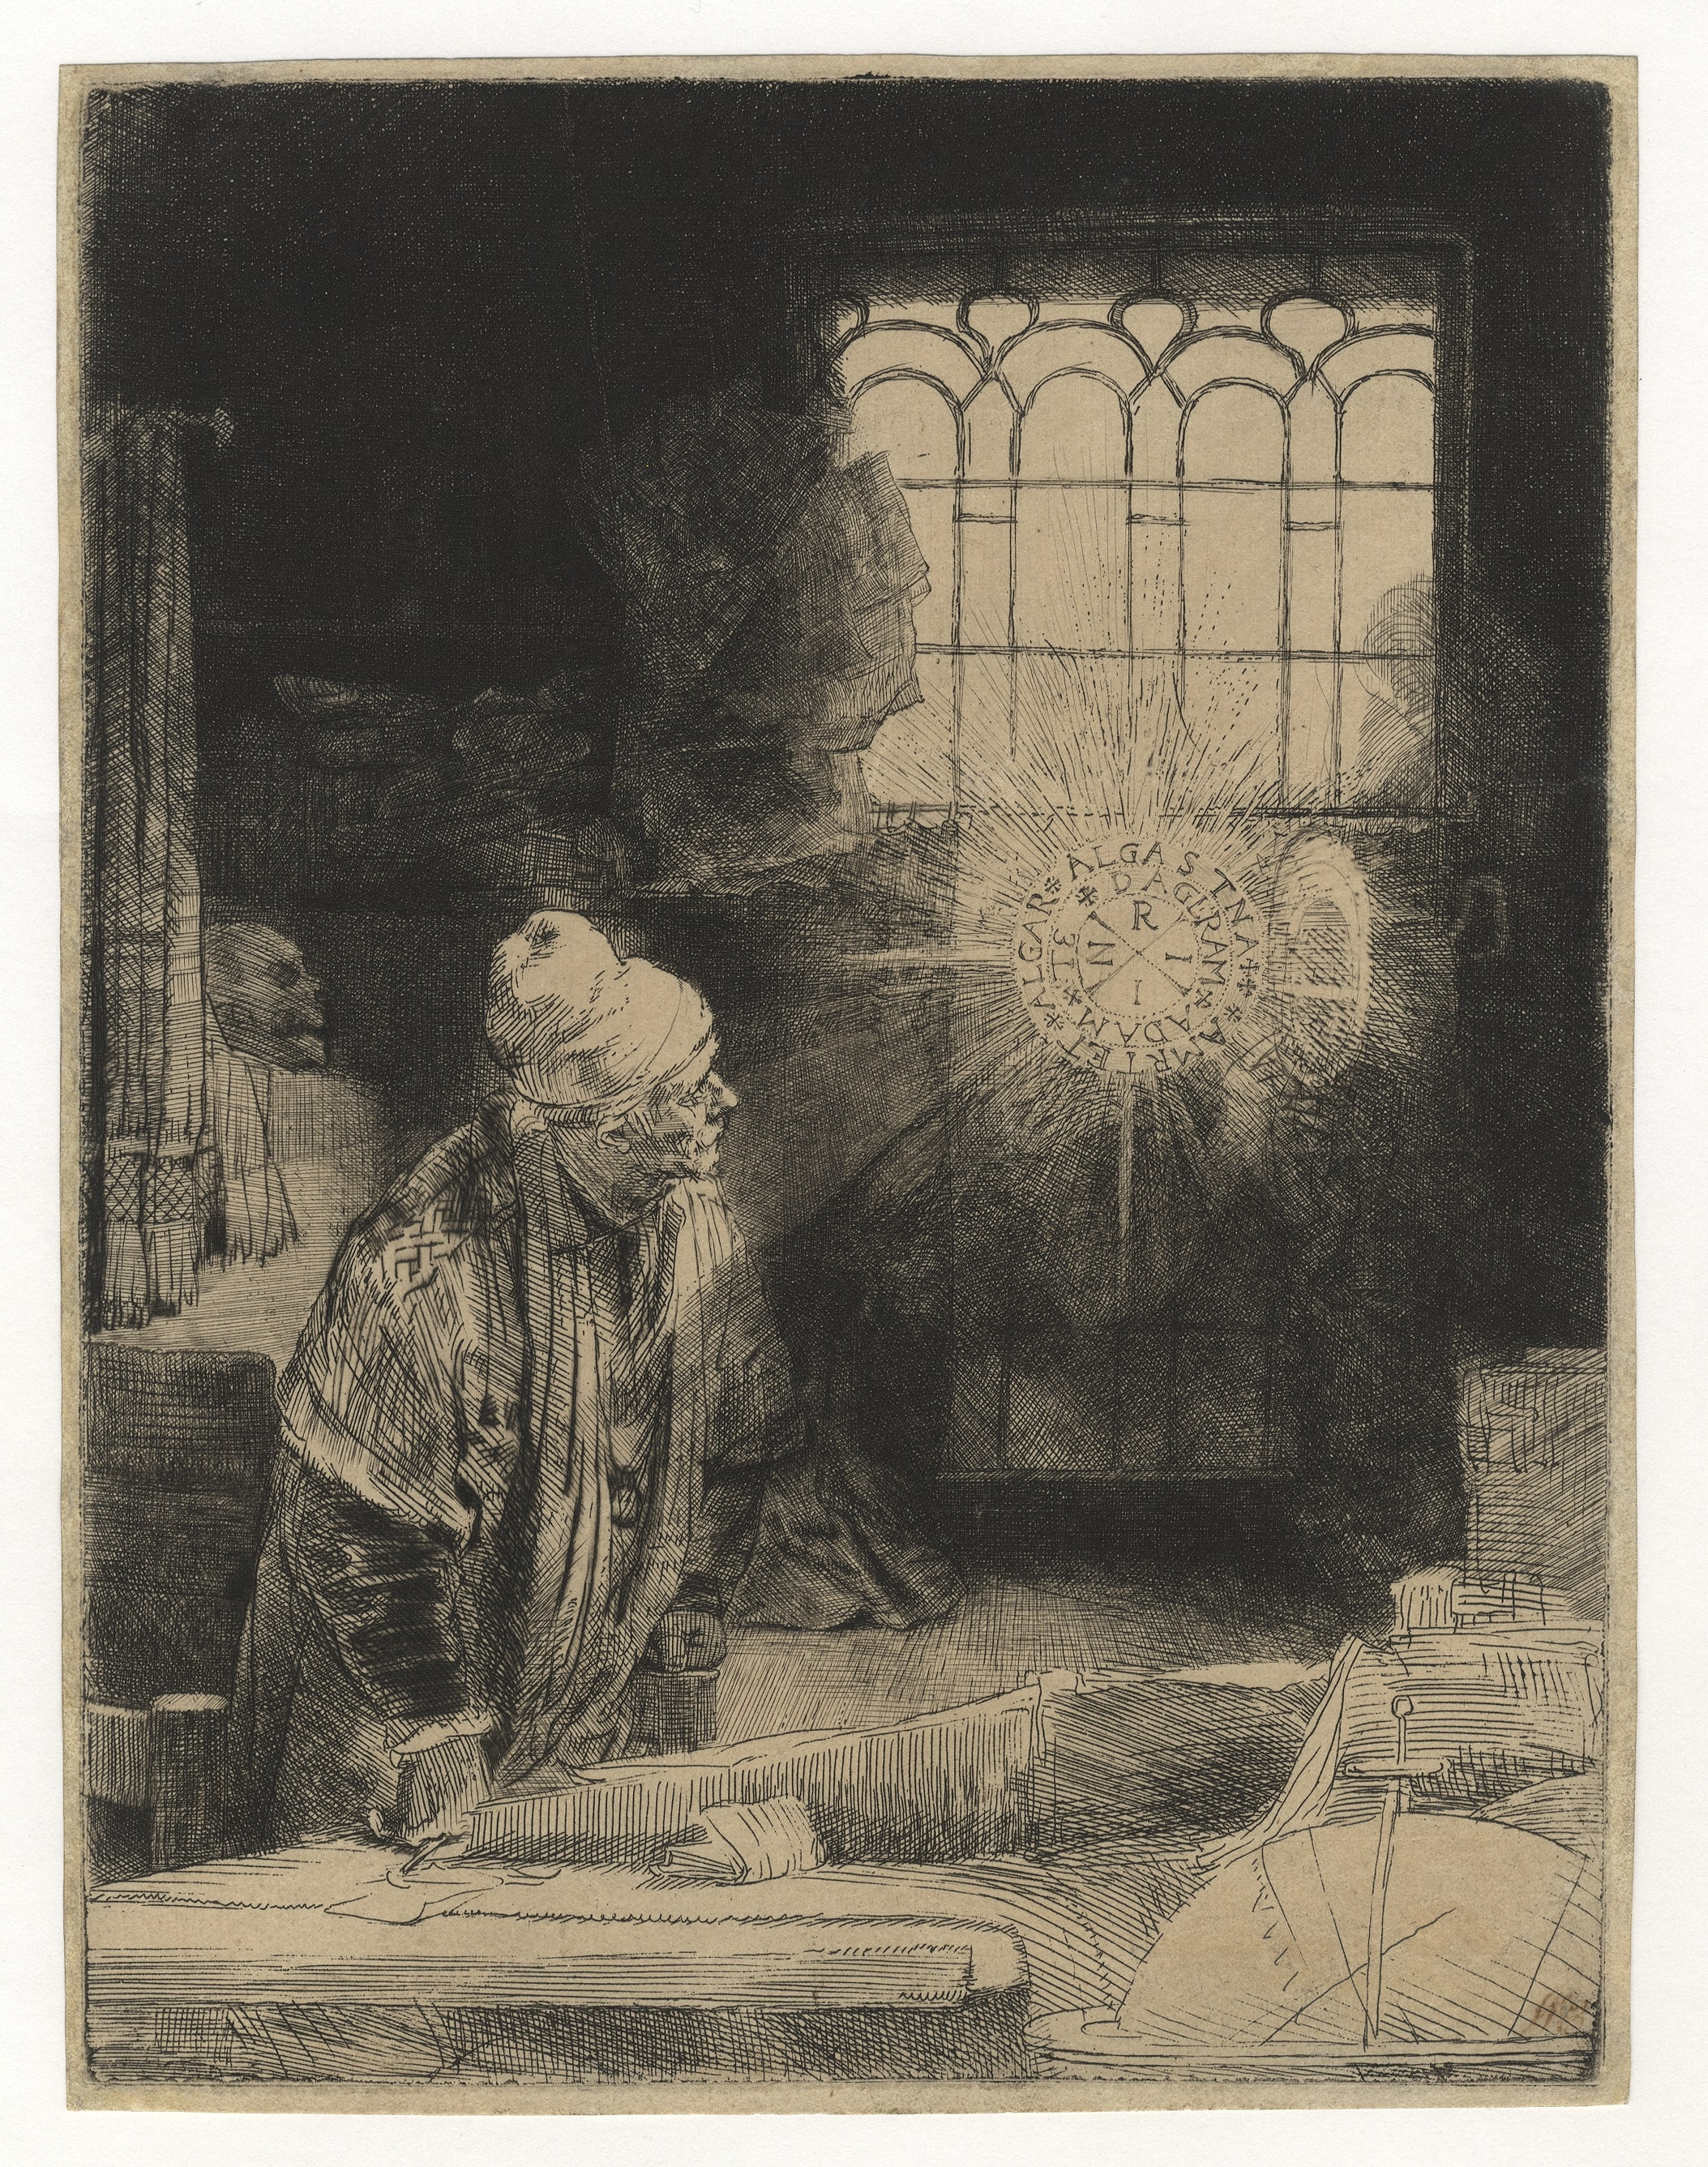 Rembrandt, A Scholar in His Study